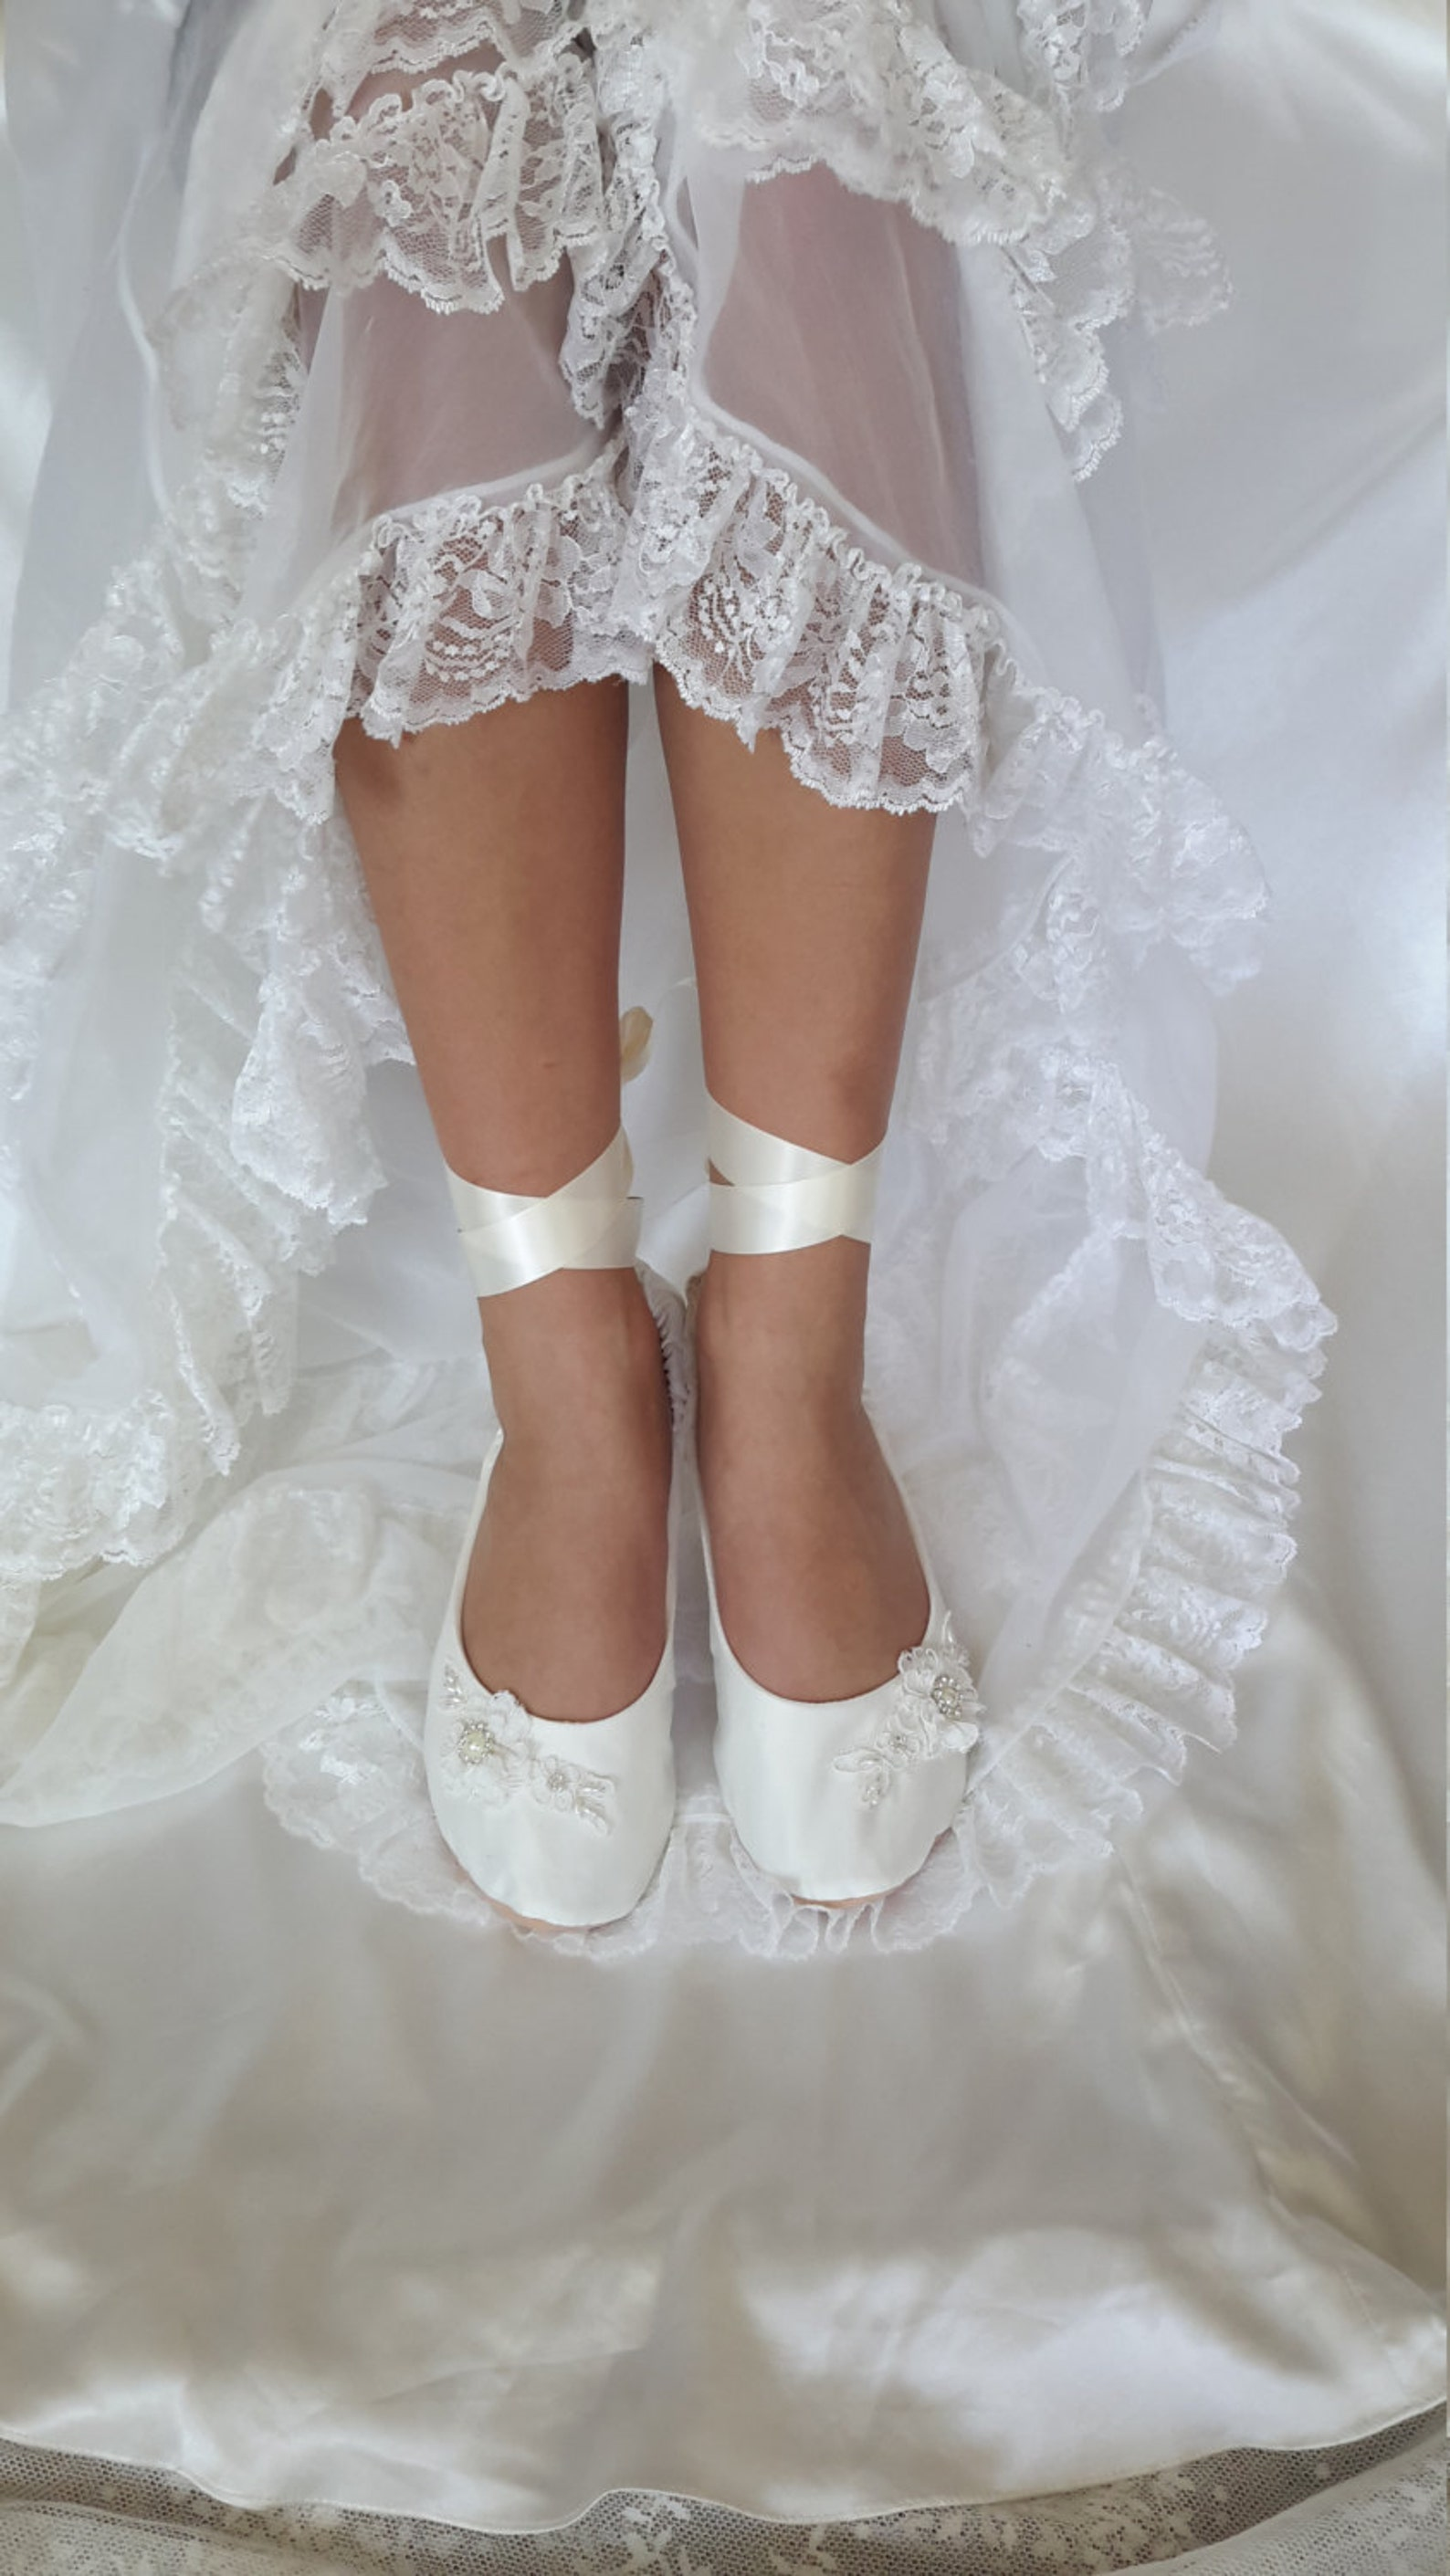 ivory satin bridal ballet shoe~lace ballerina slipper~ wedding ballet shoe flat~ cream bridal ballet shoe ~ lace ballerina brida